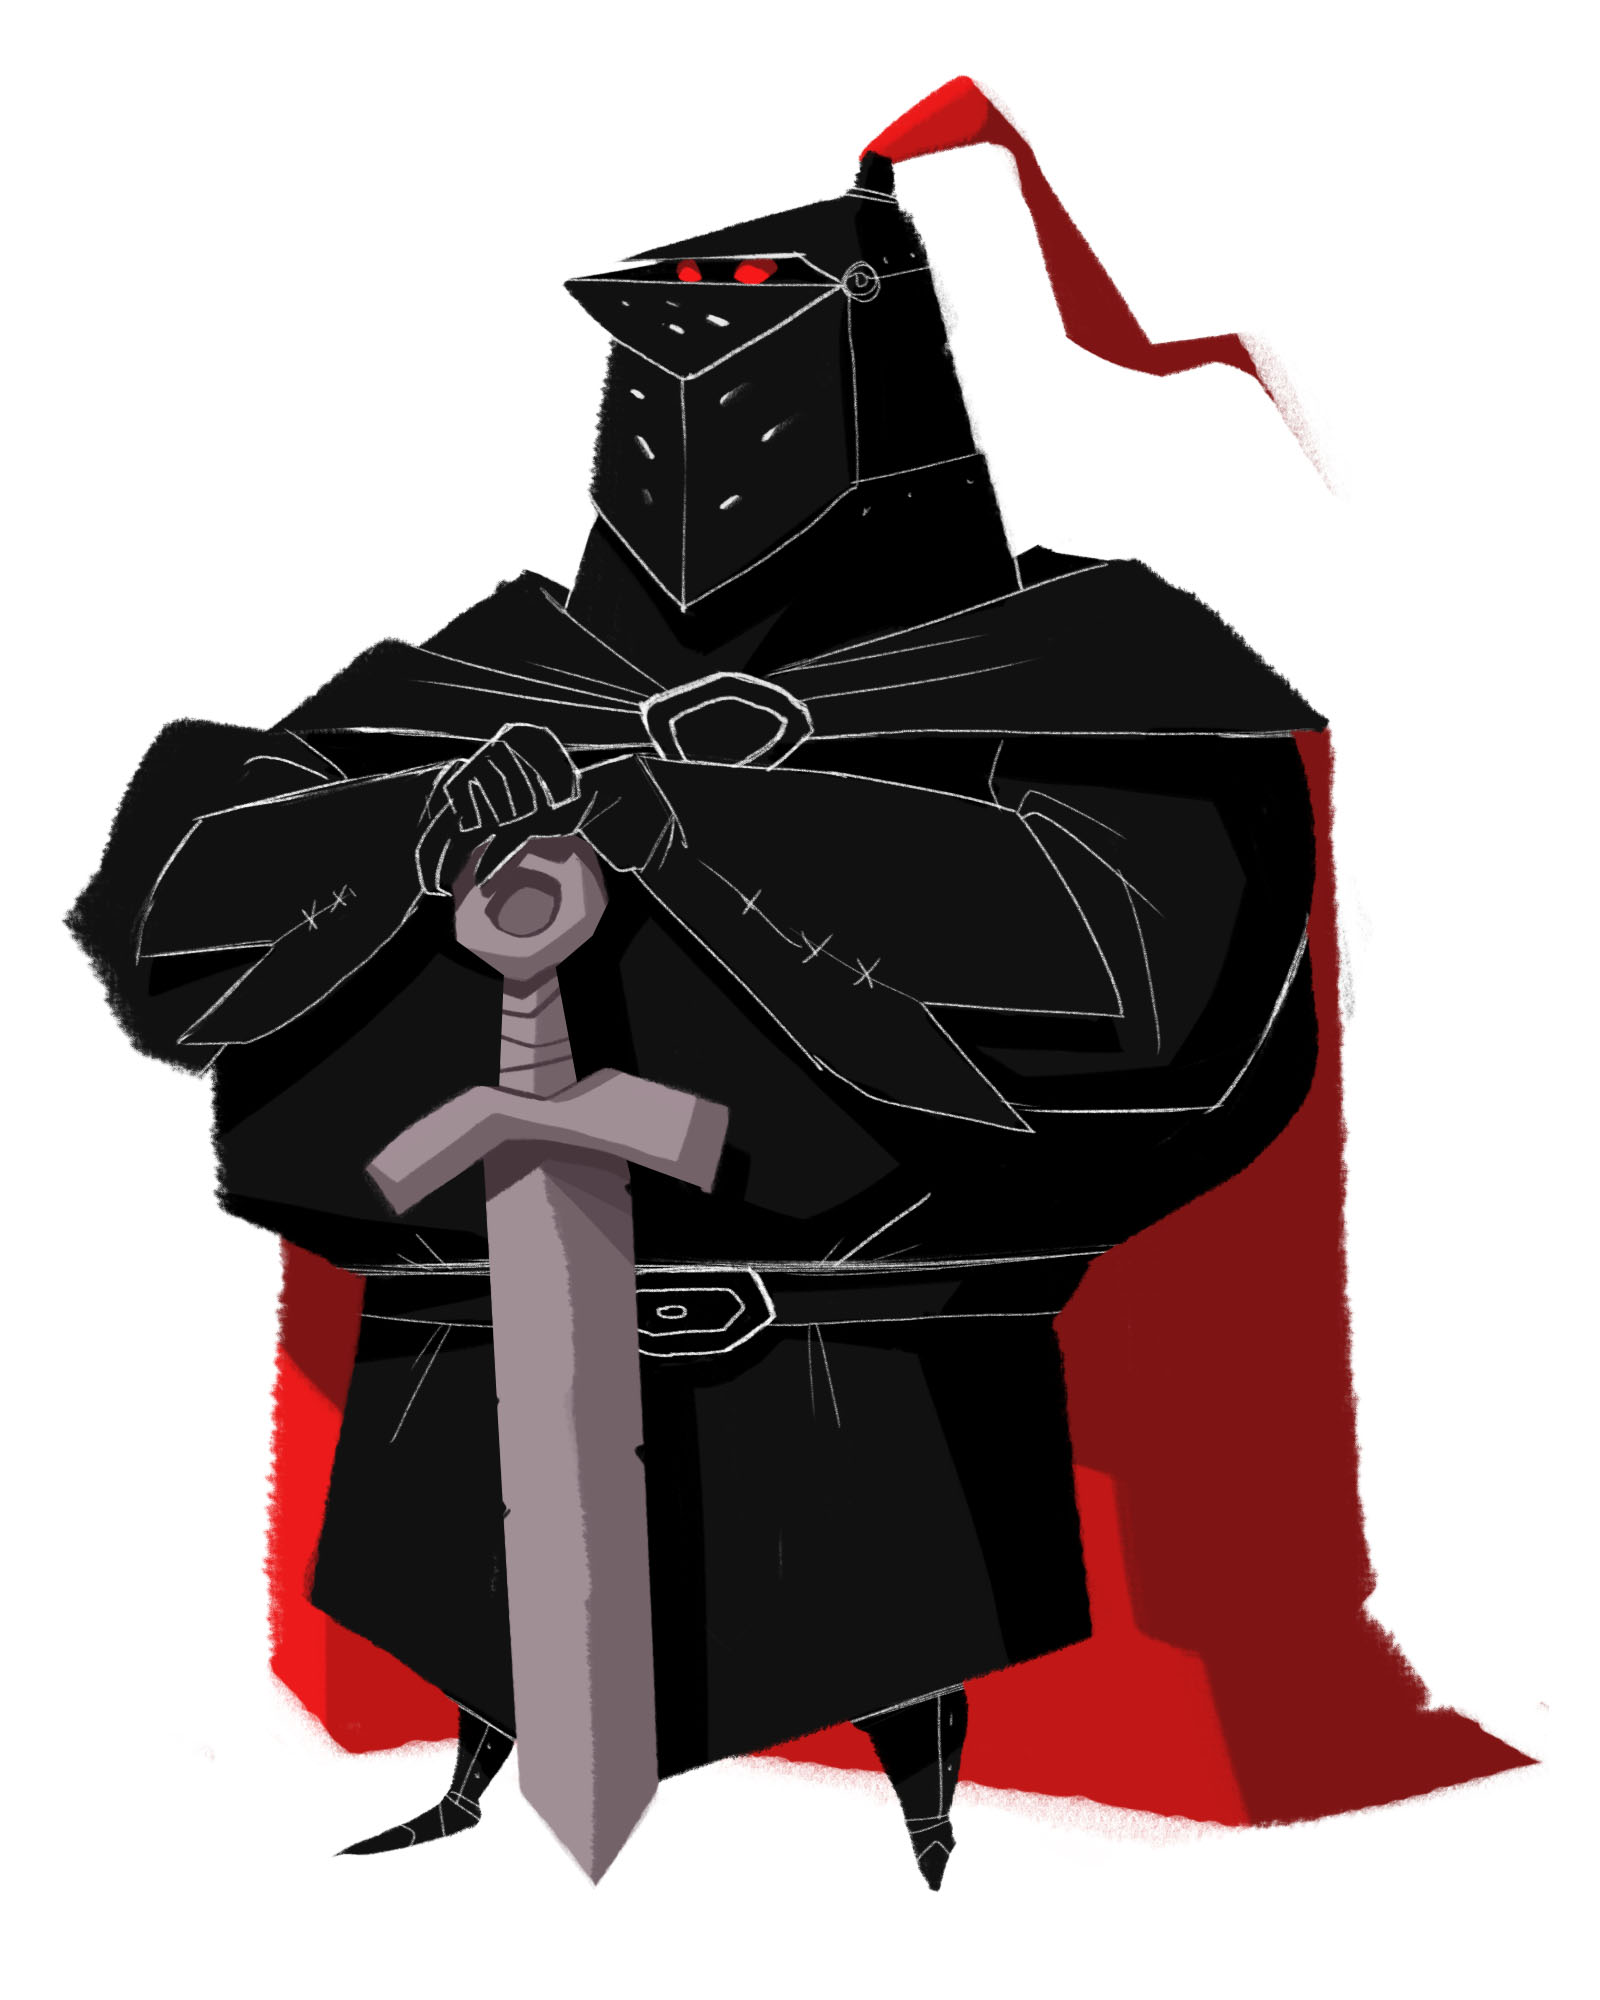 charoftheday_BLACKKNIGHT.jpg